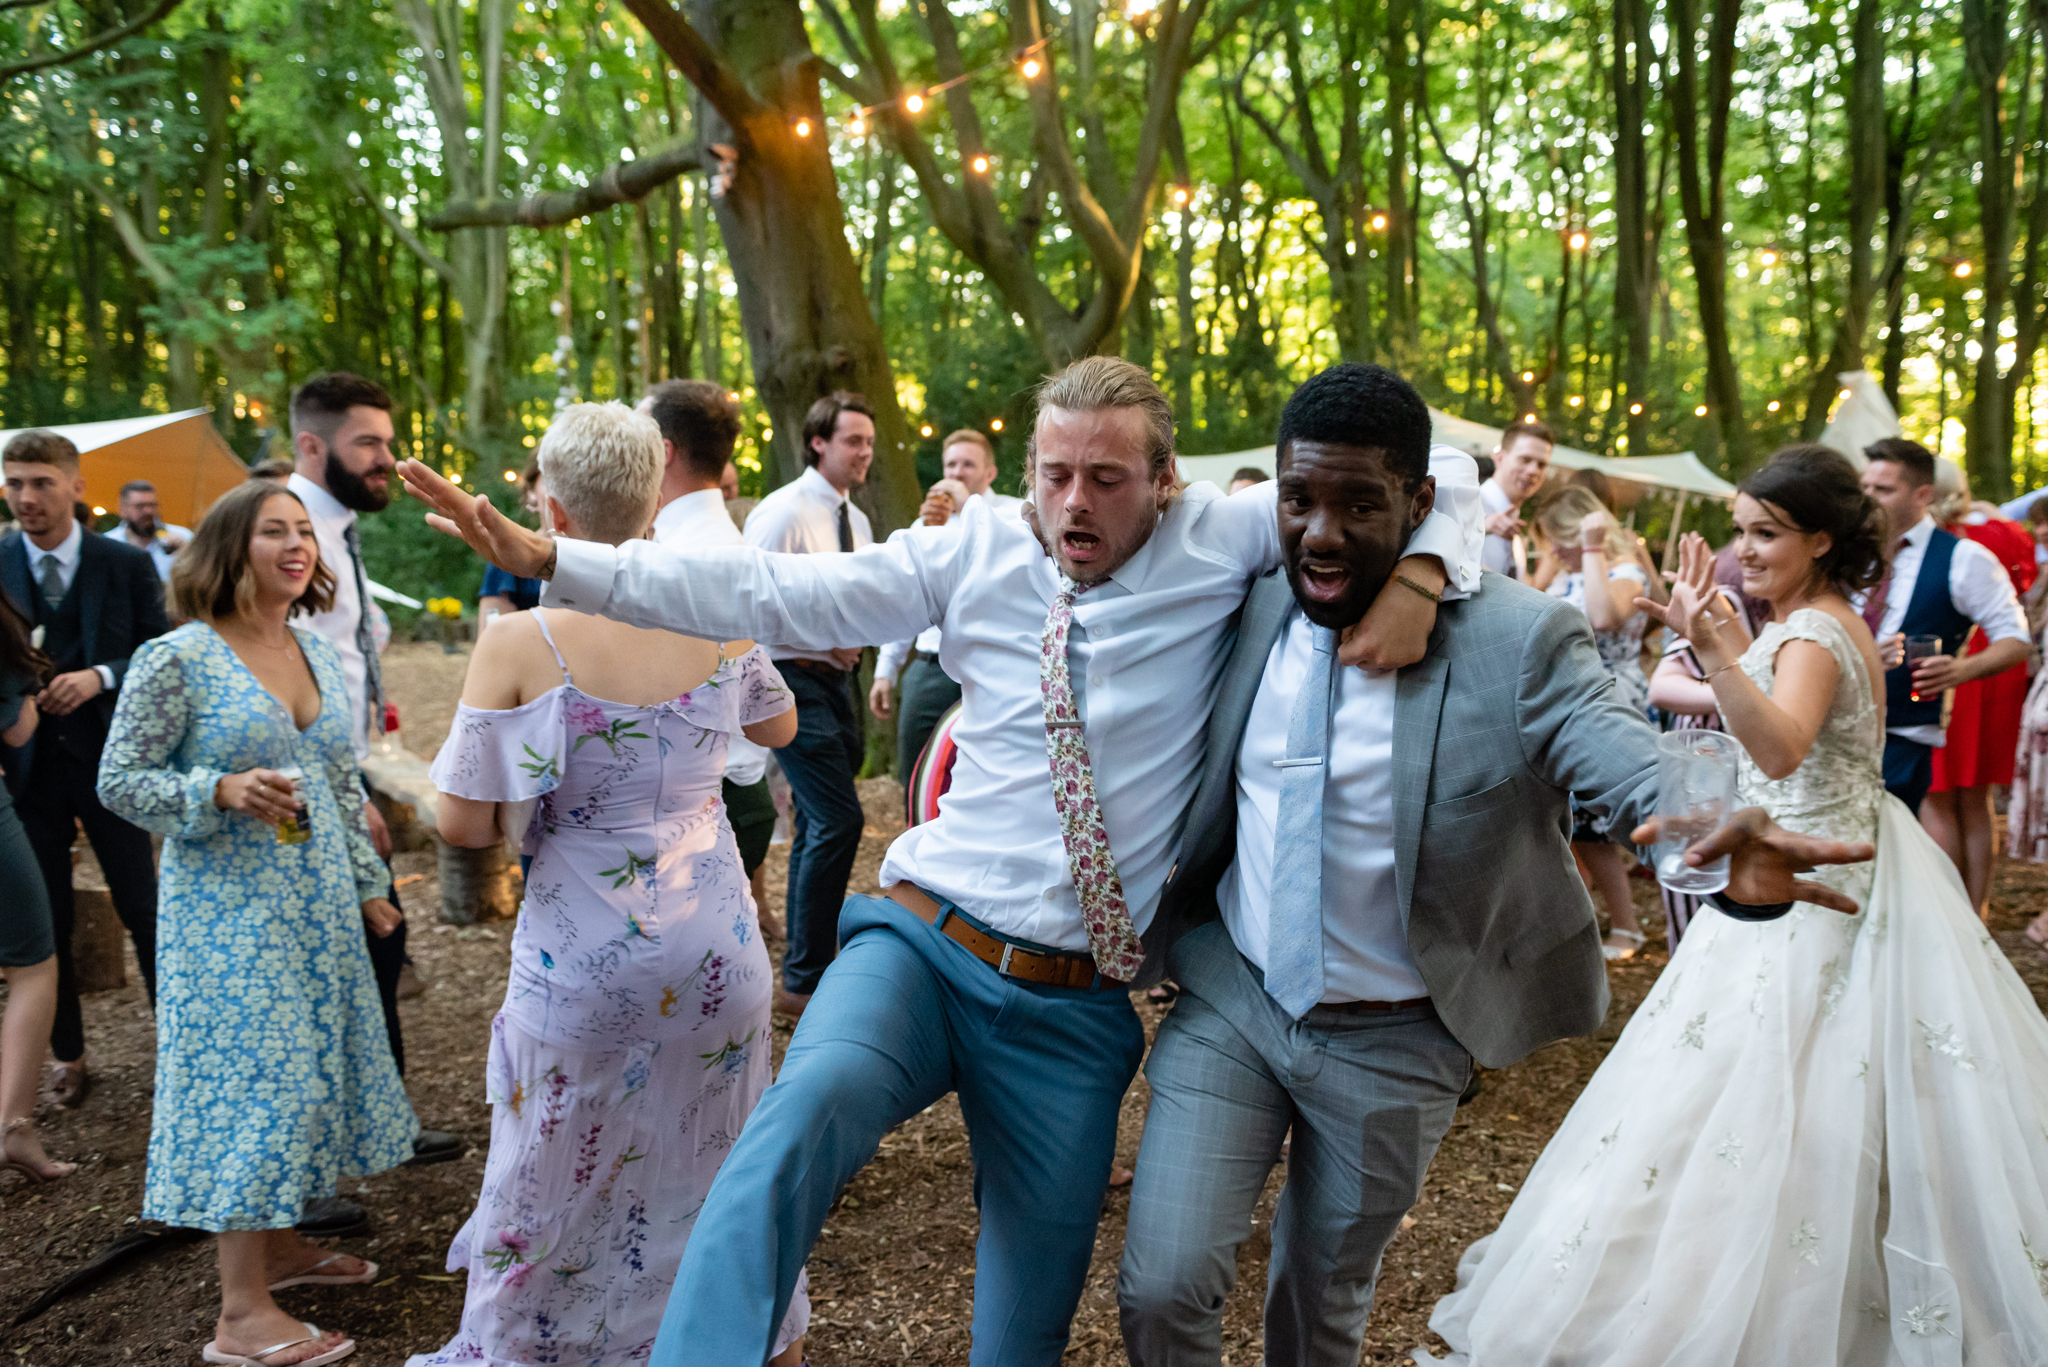 Guests dancing at Woodland Weddings